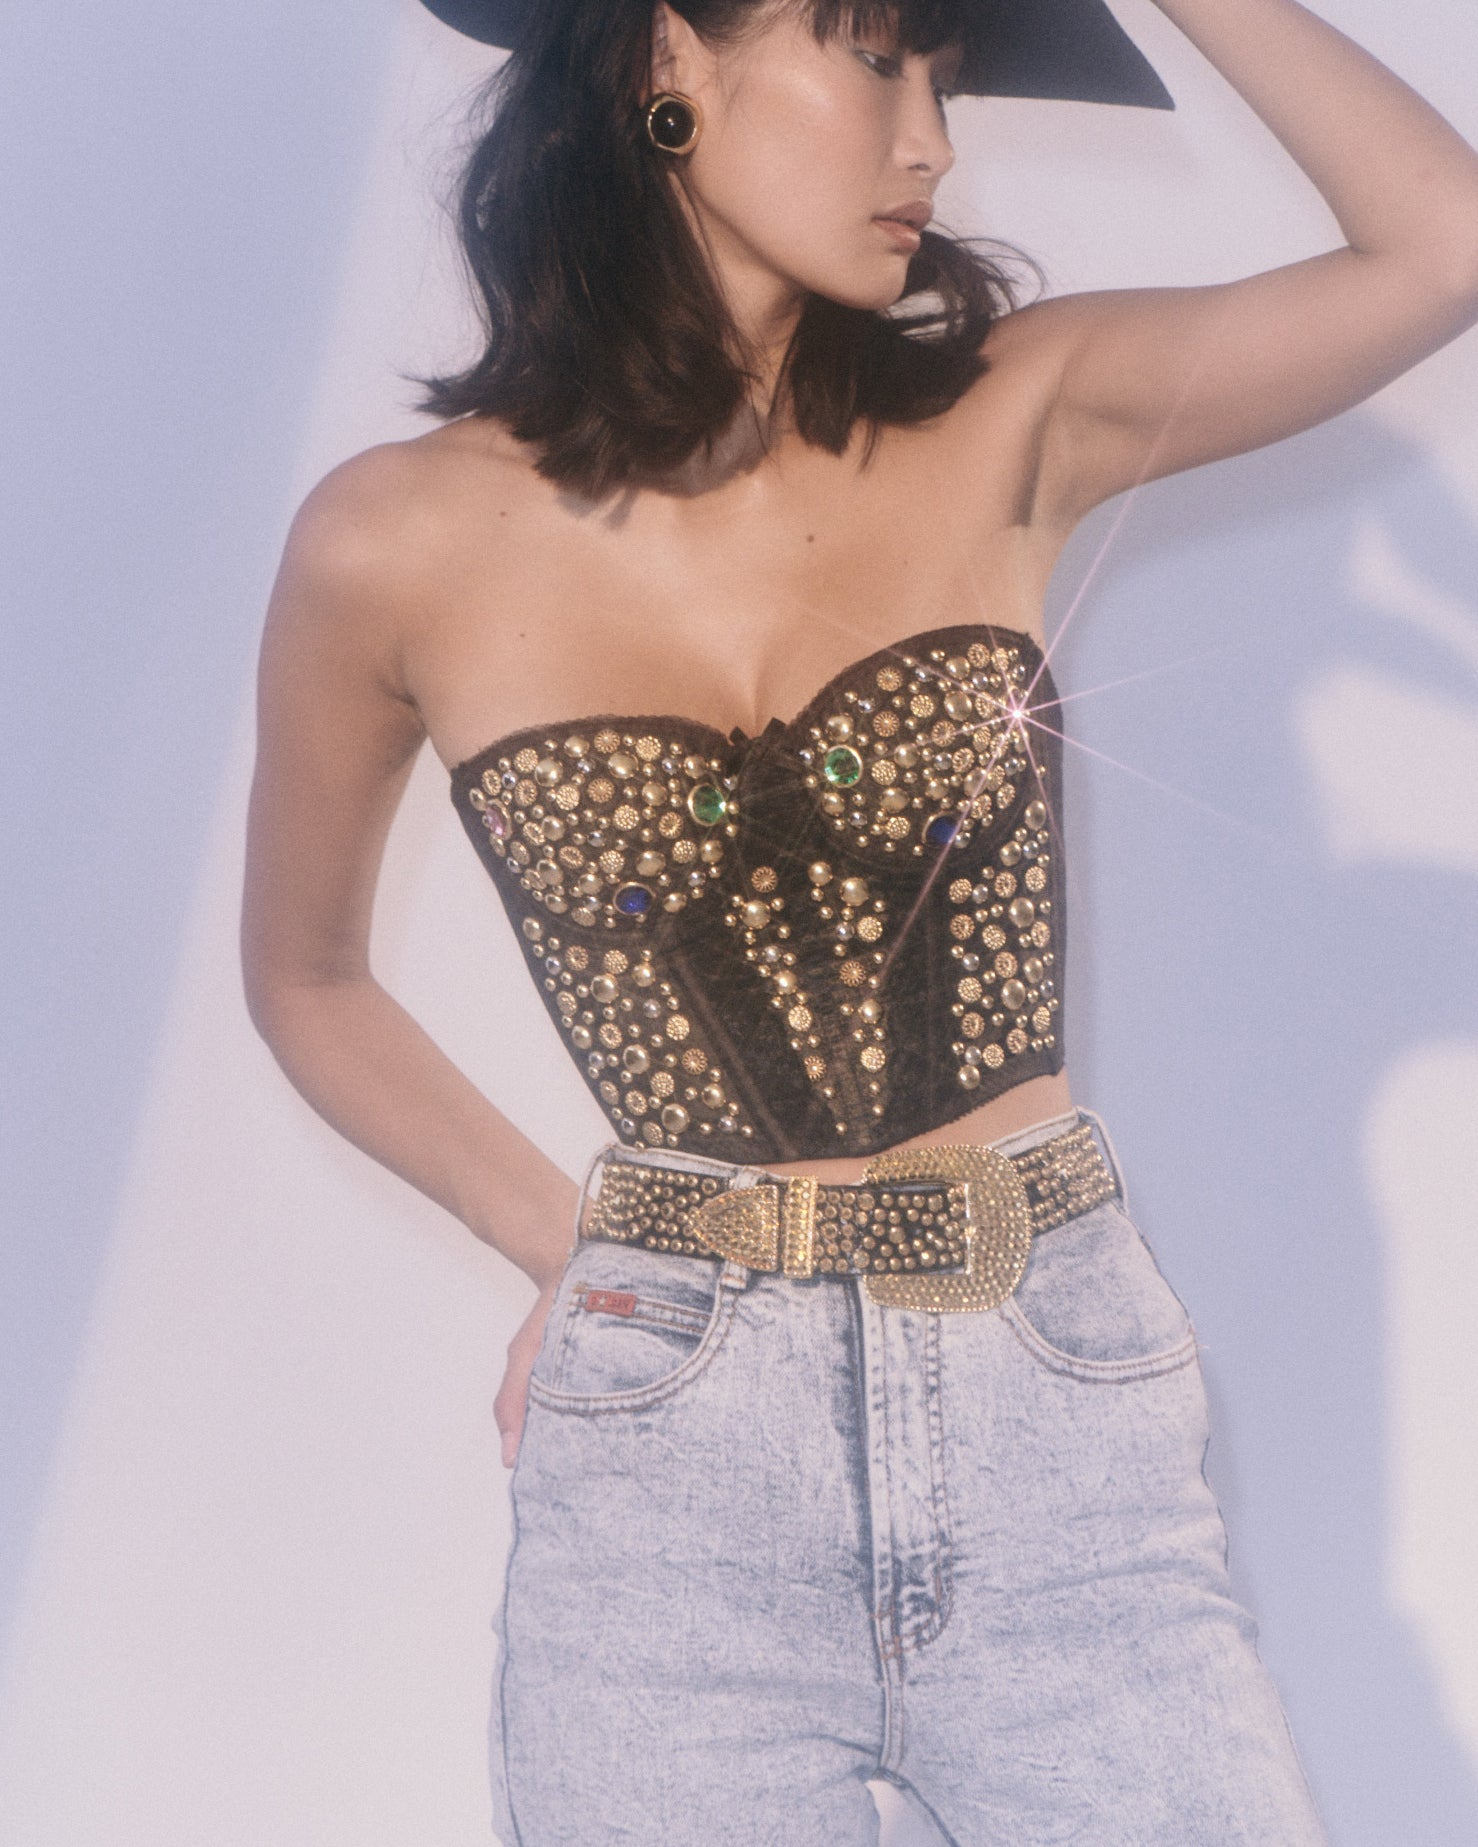 Queen of Las Vegas Studded Bustier